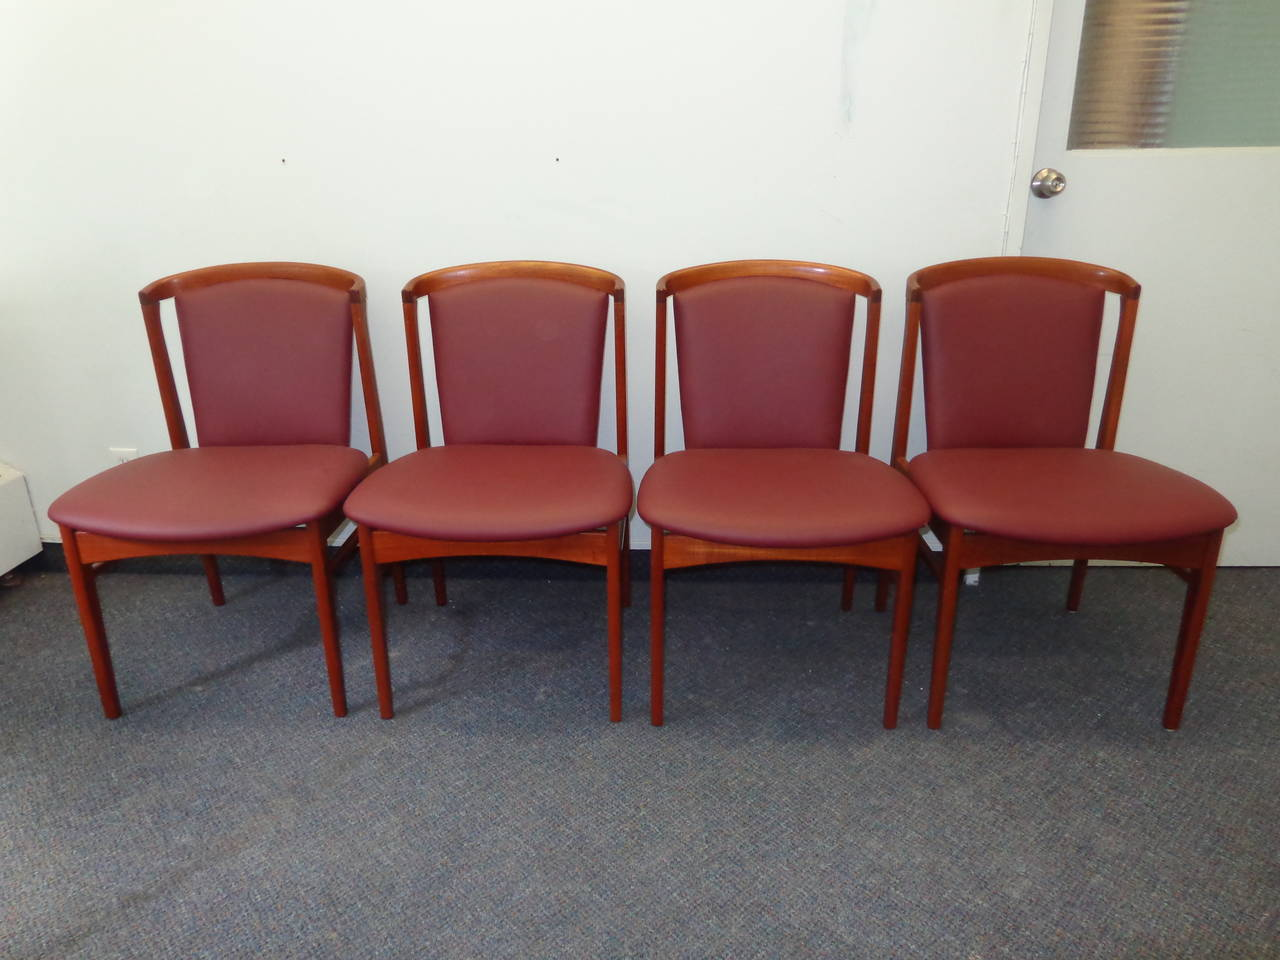 Danish Erik Buch Set of Four Teak Dining Chairs Reupholstered in Leather For Sale